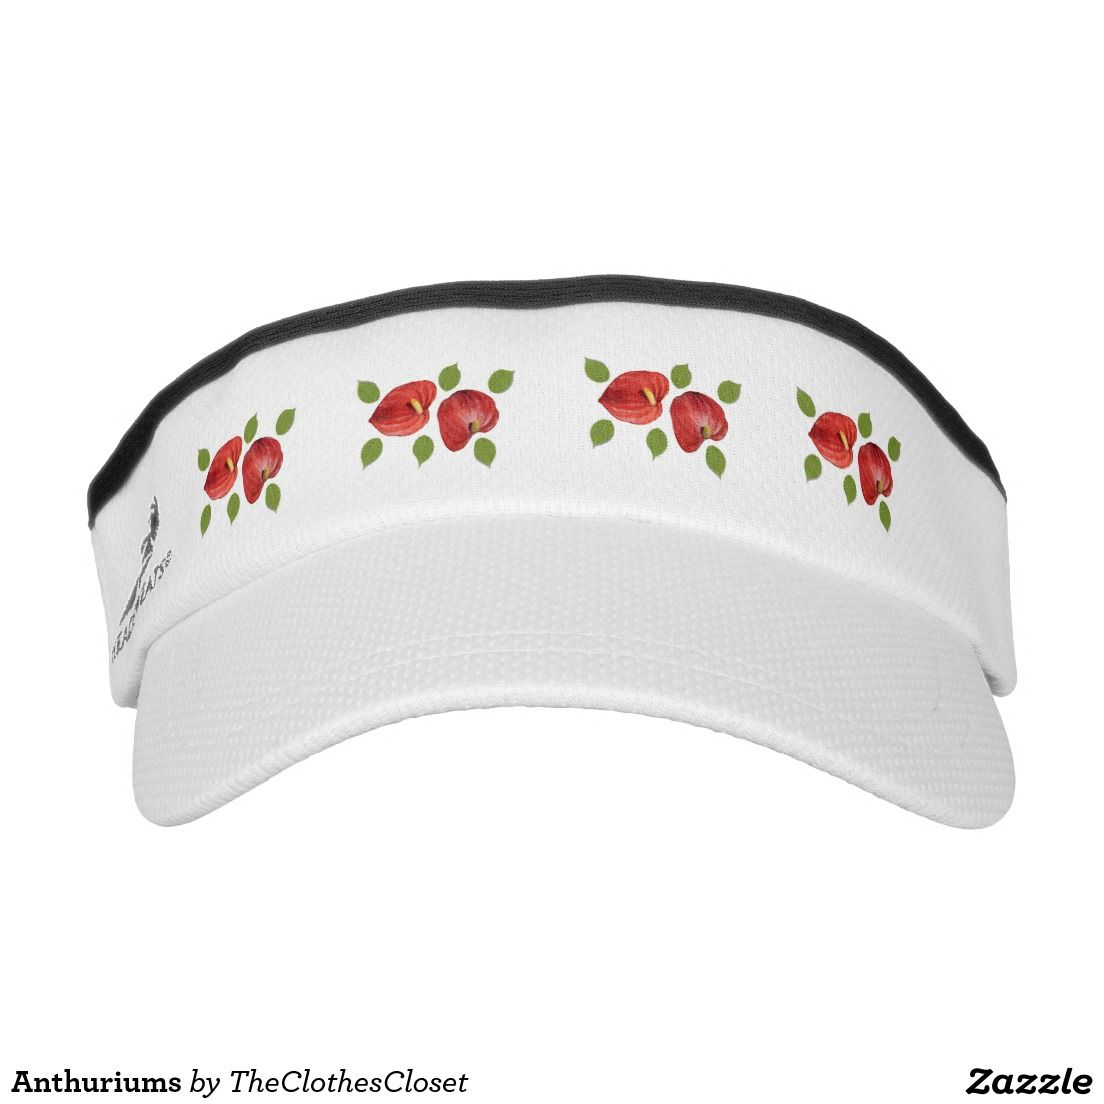 6dc9c261231 Anthuriums Visor. Anthuriums Visor Basketball Design